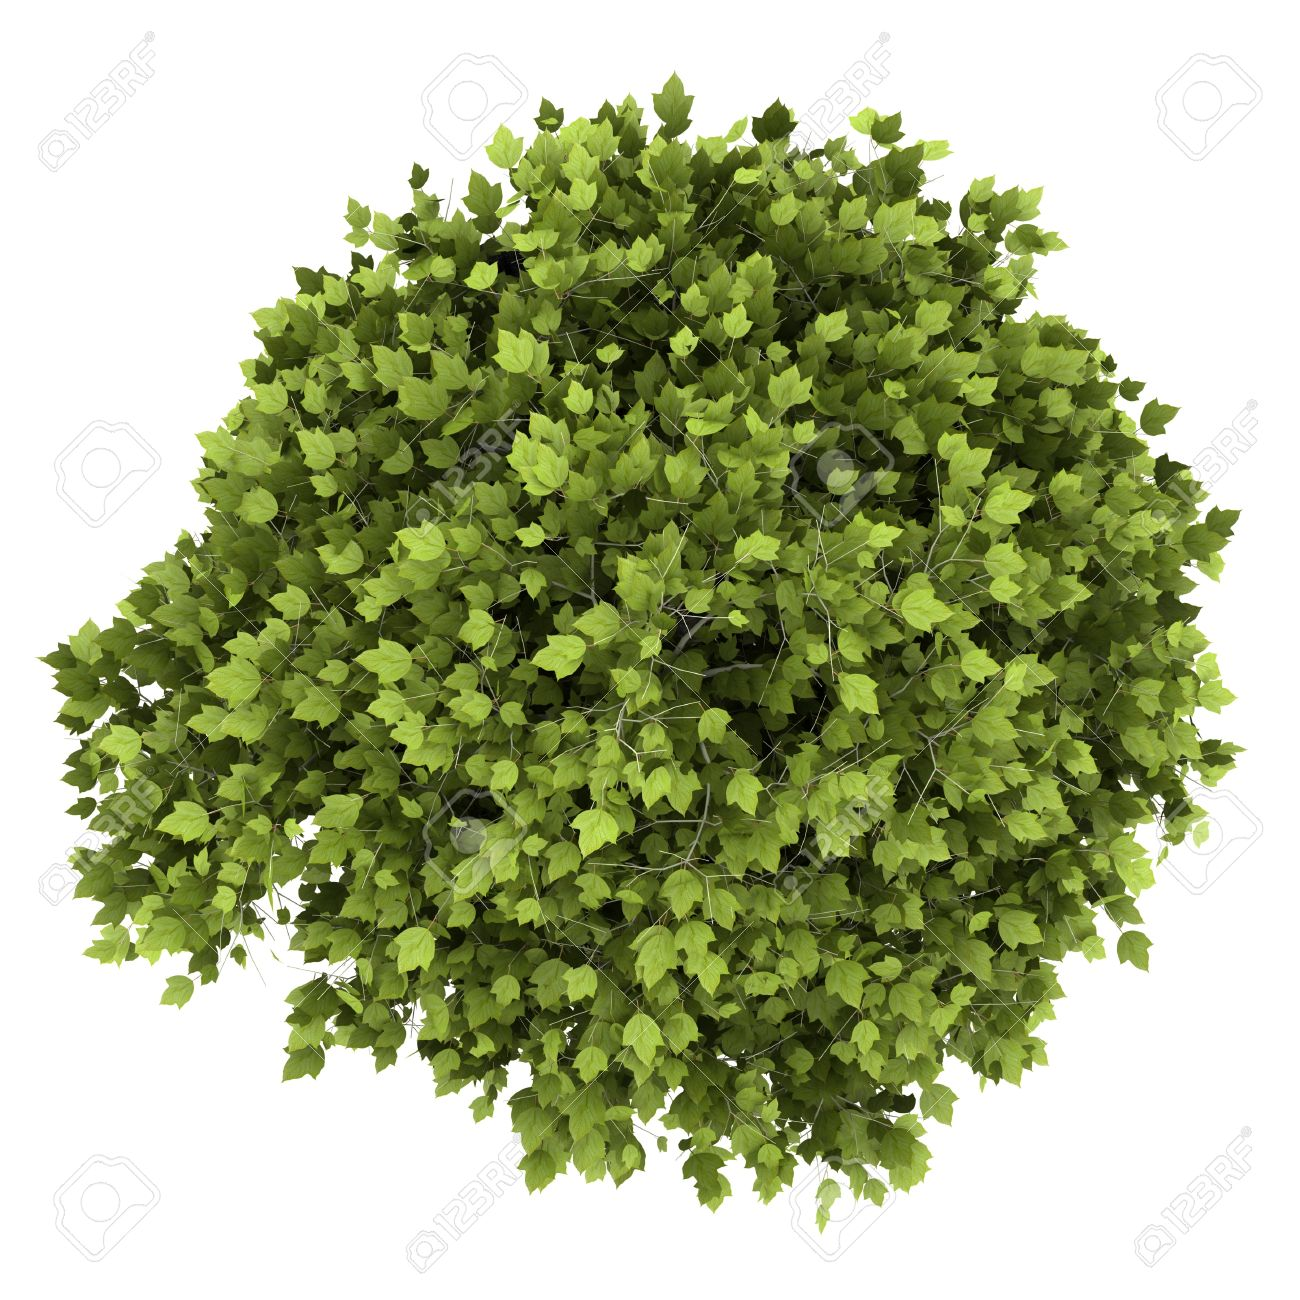 Top View Of Bonsai Plant In Pot Isolated On White Background Stock Photo